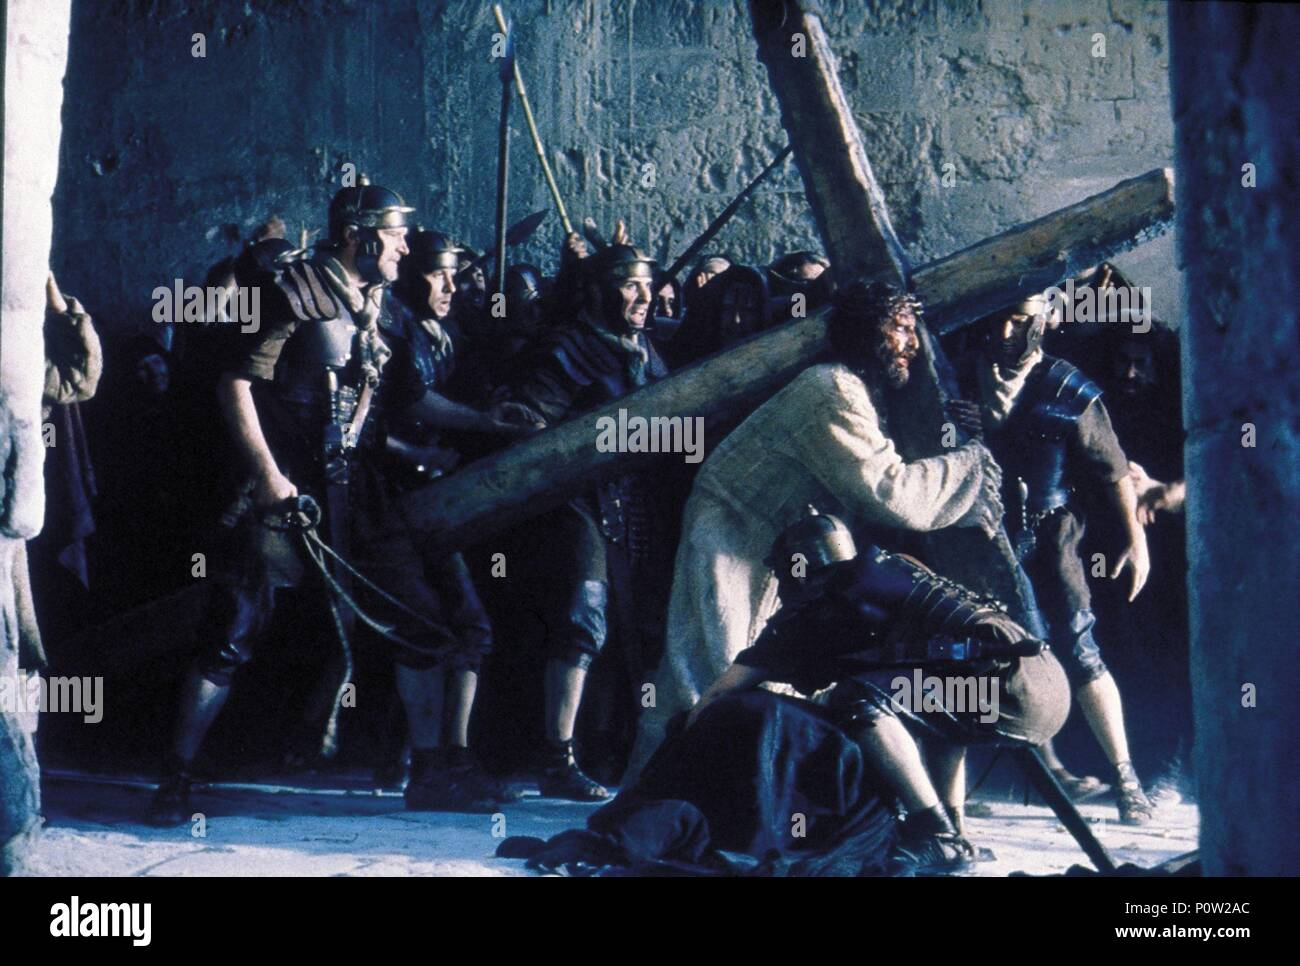 Original Film Title: THE PASSION OF THE CHRIST.  English Title: THE PASSION OF THE CHRIST.  Film Director: MEL GIBSON.  Year: 2004.  Stars: JIM CAVIEZEL. Credit: ICON DISTRIBUTION INC. / ANTONELLO, PHILIPPE / Album Stock Photo